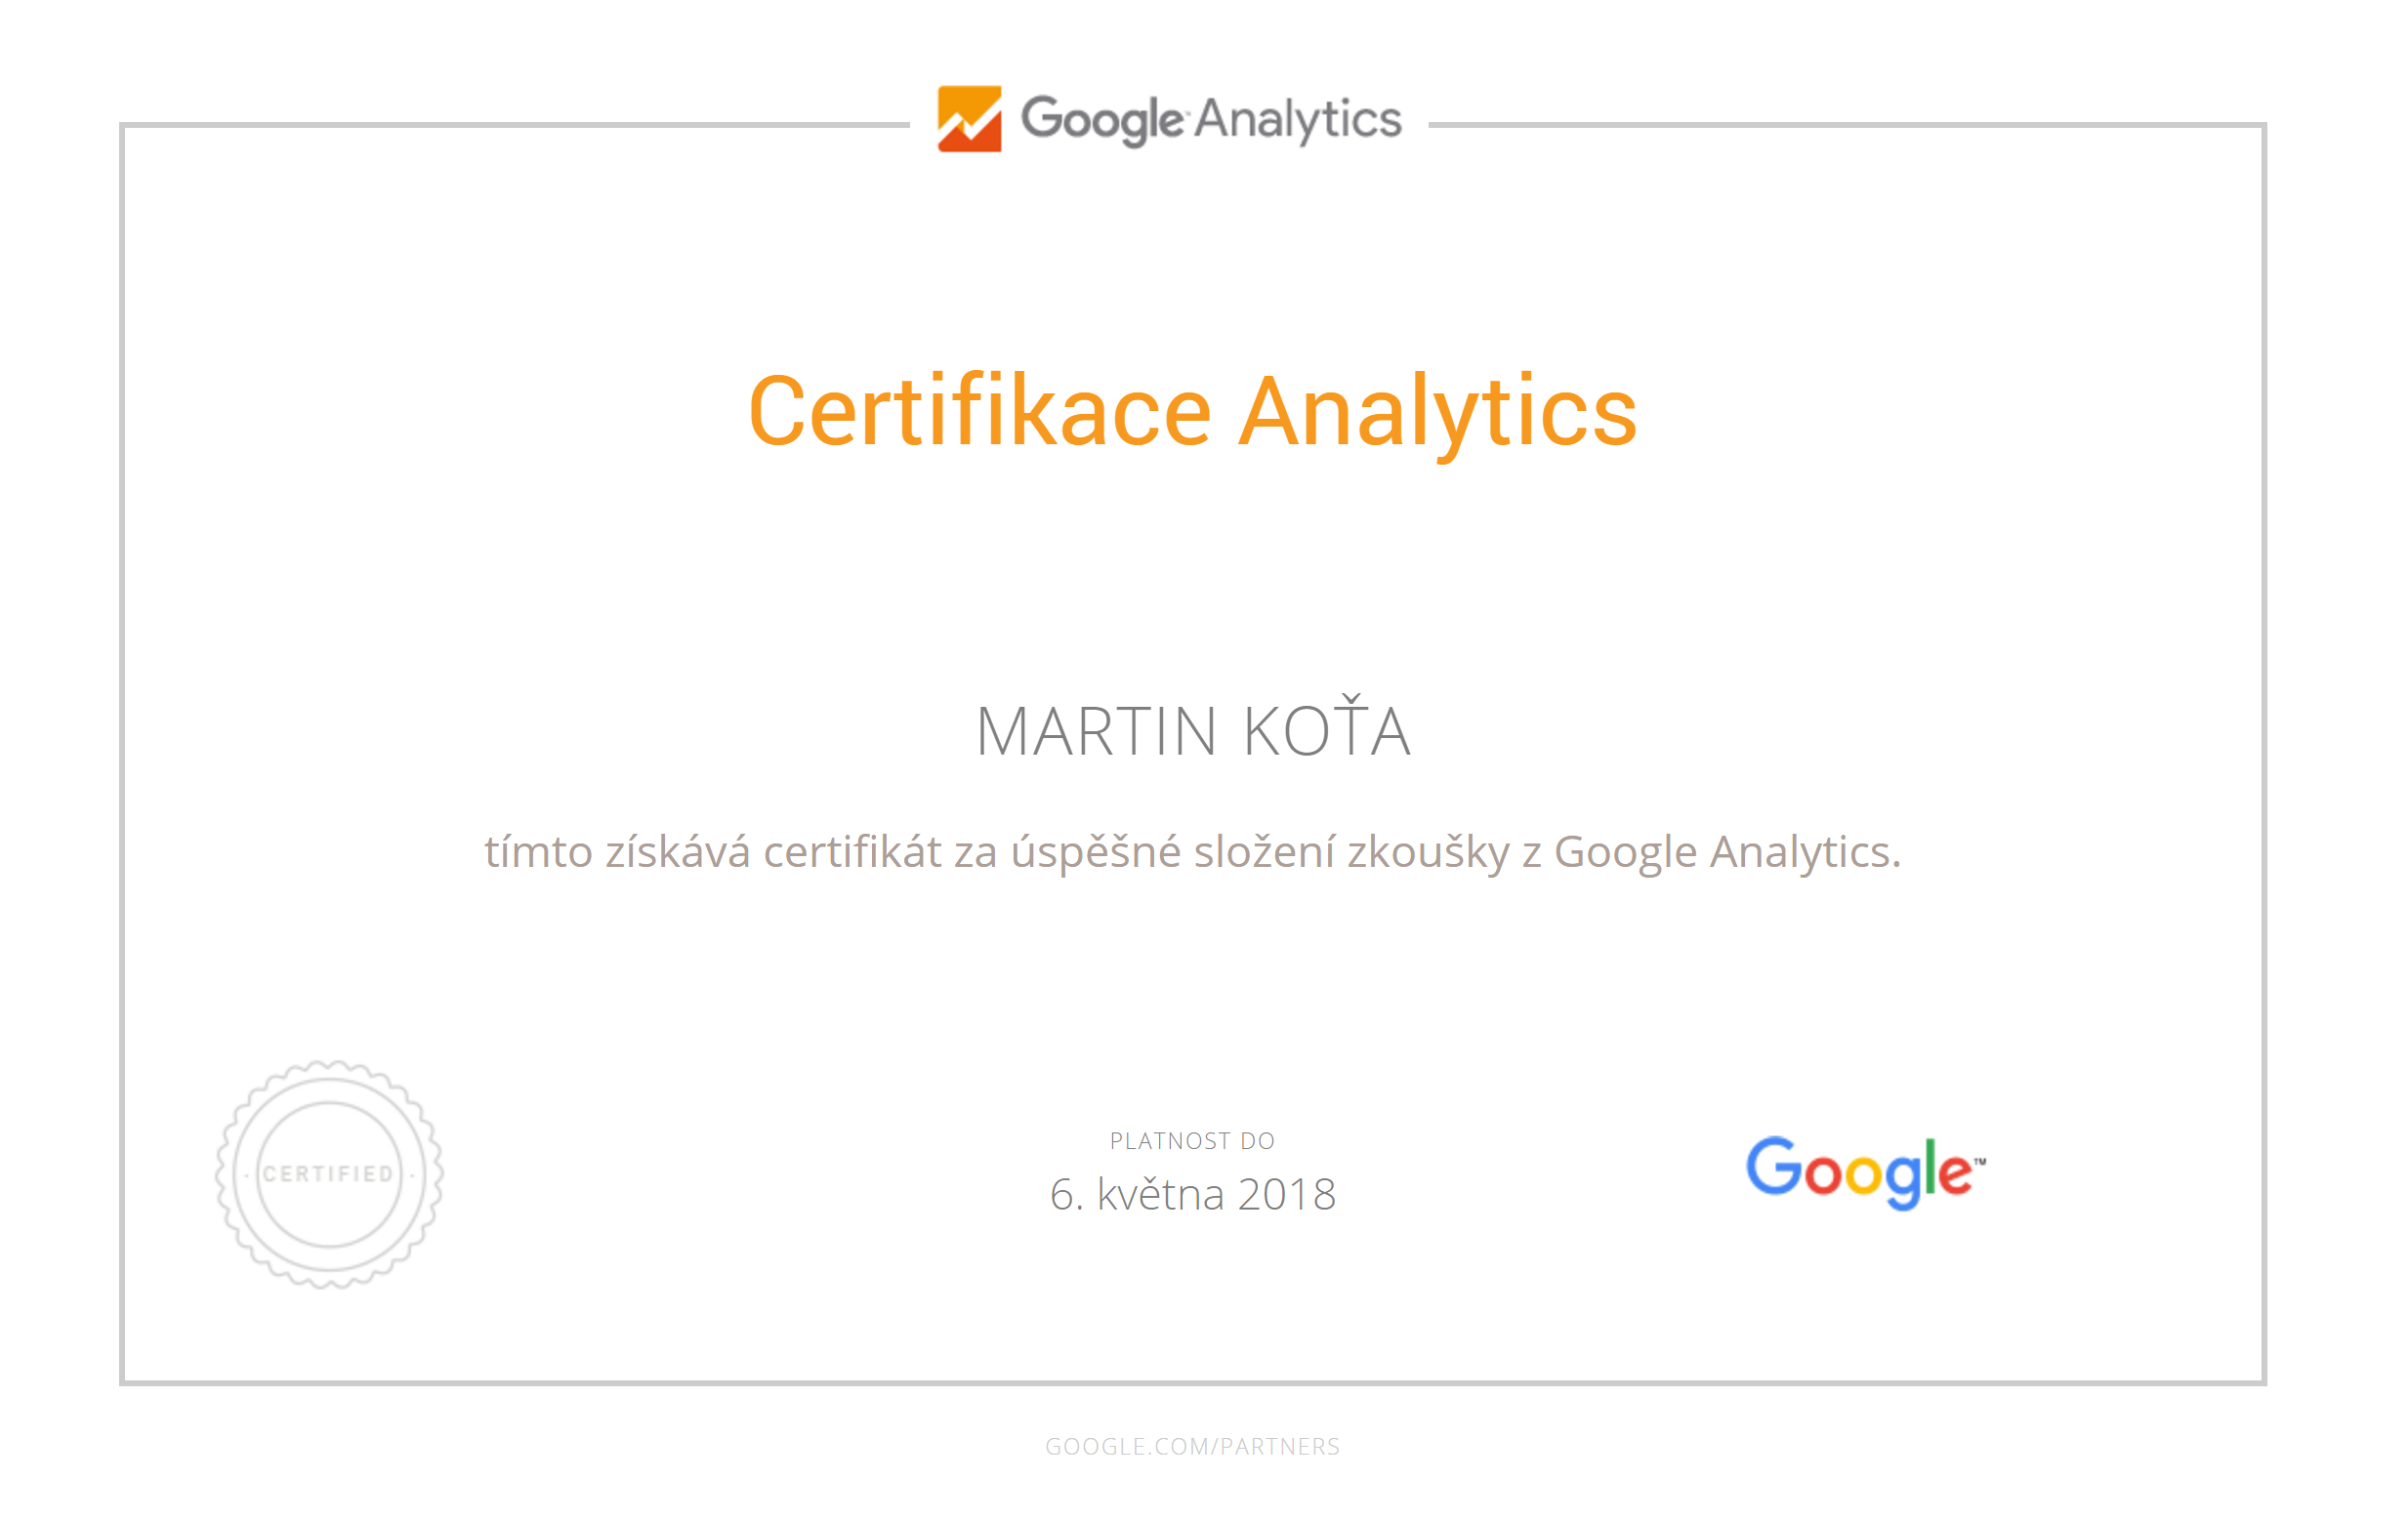 certifikat-google-analytics